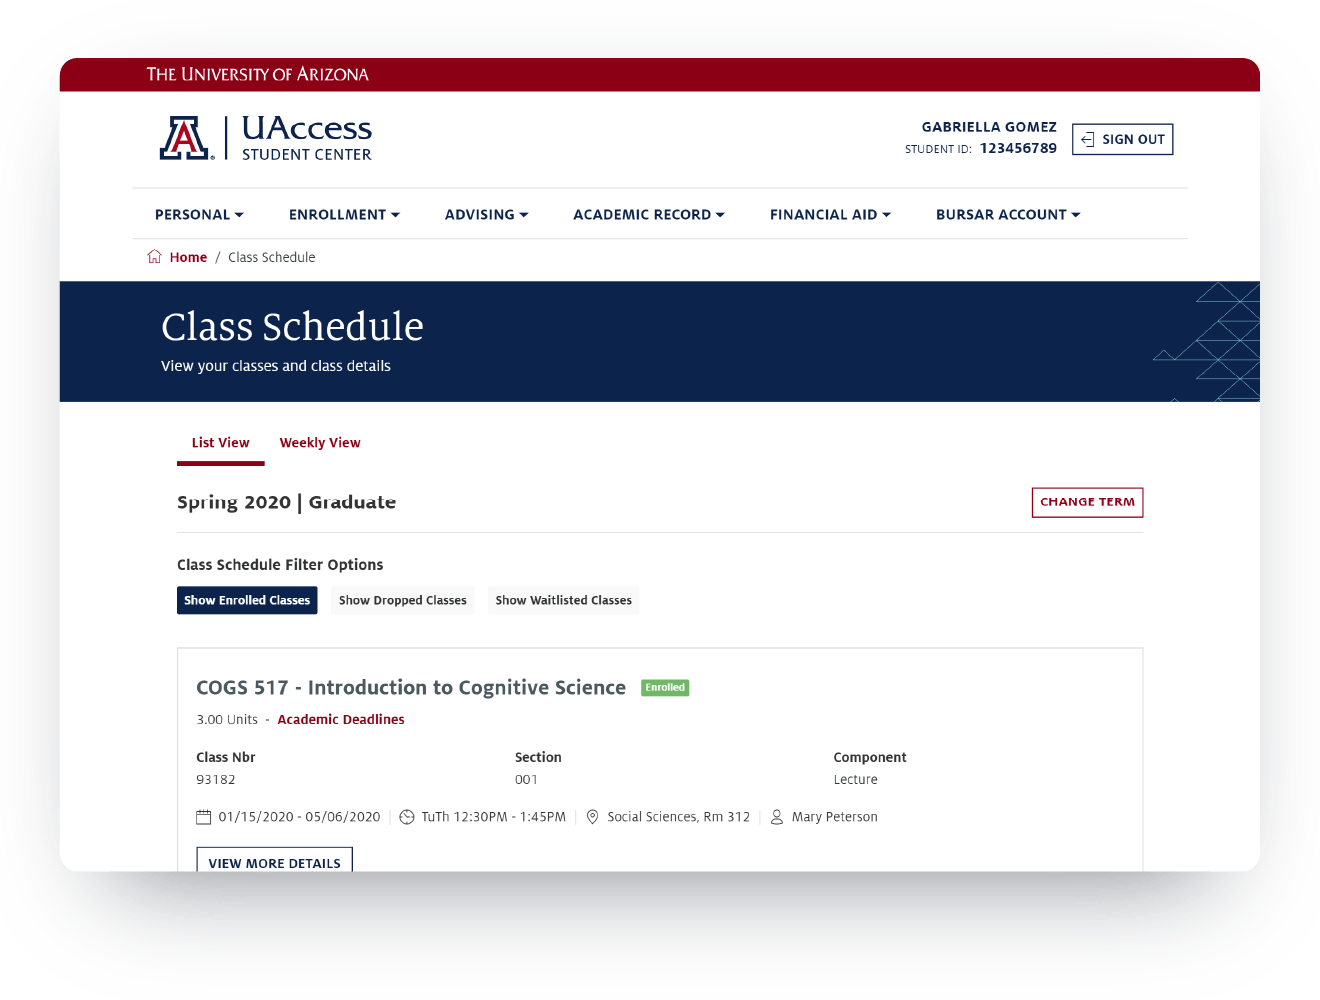 University of Arizona PeopleSoft Mobile Student Portal Images